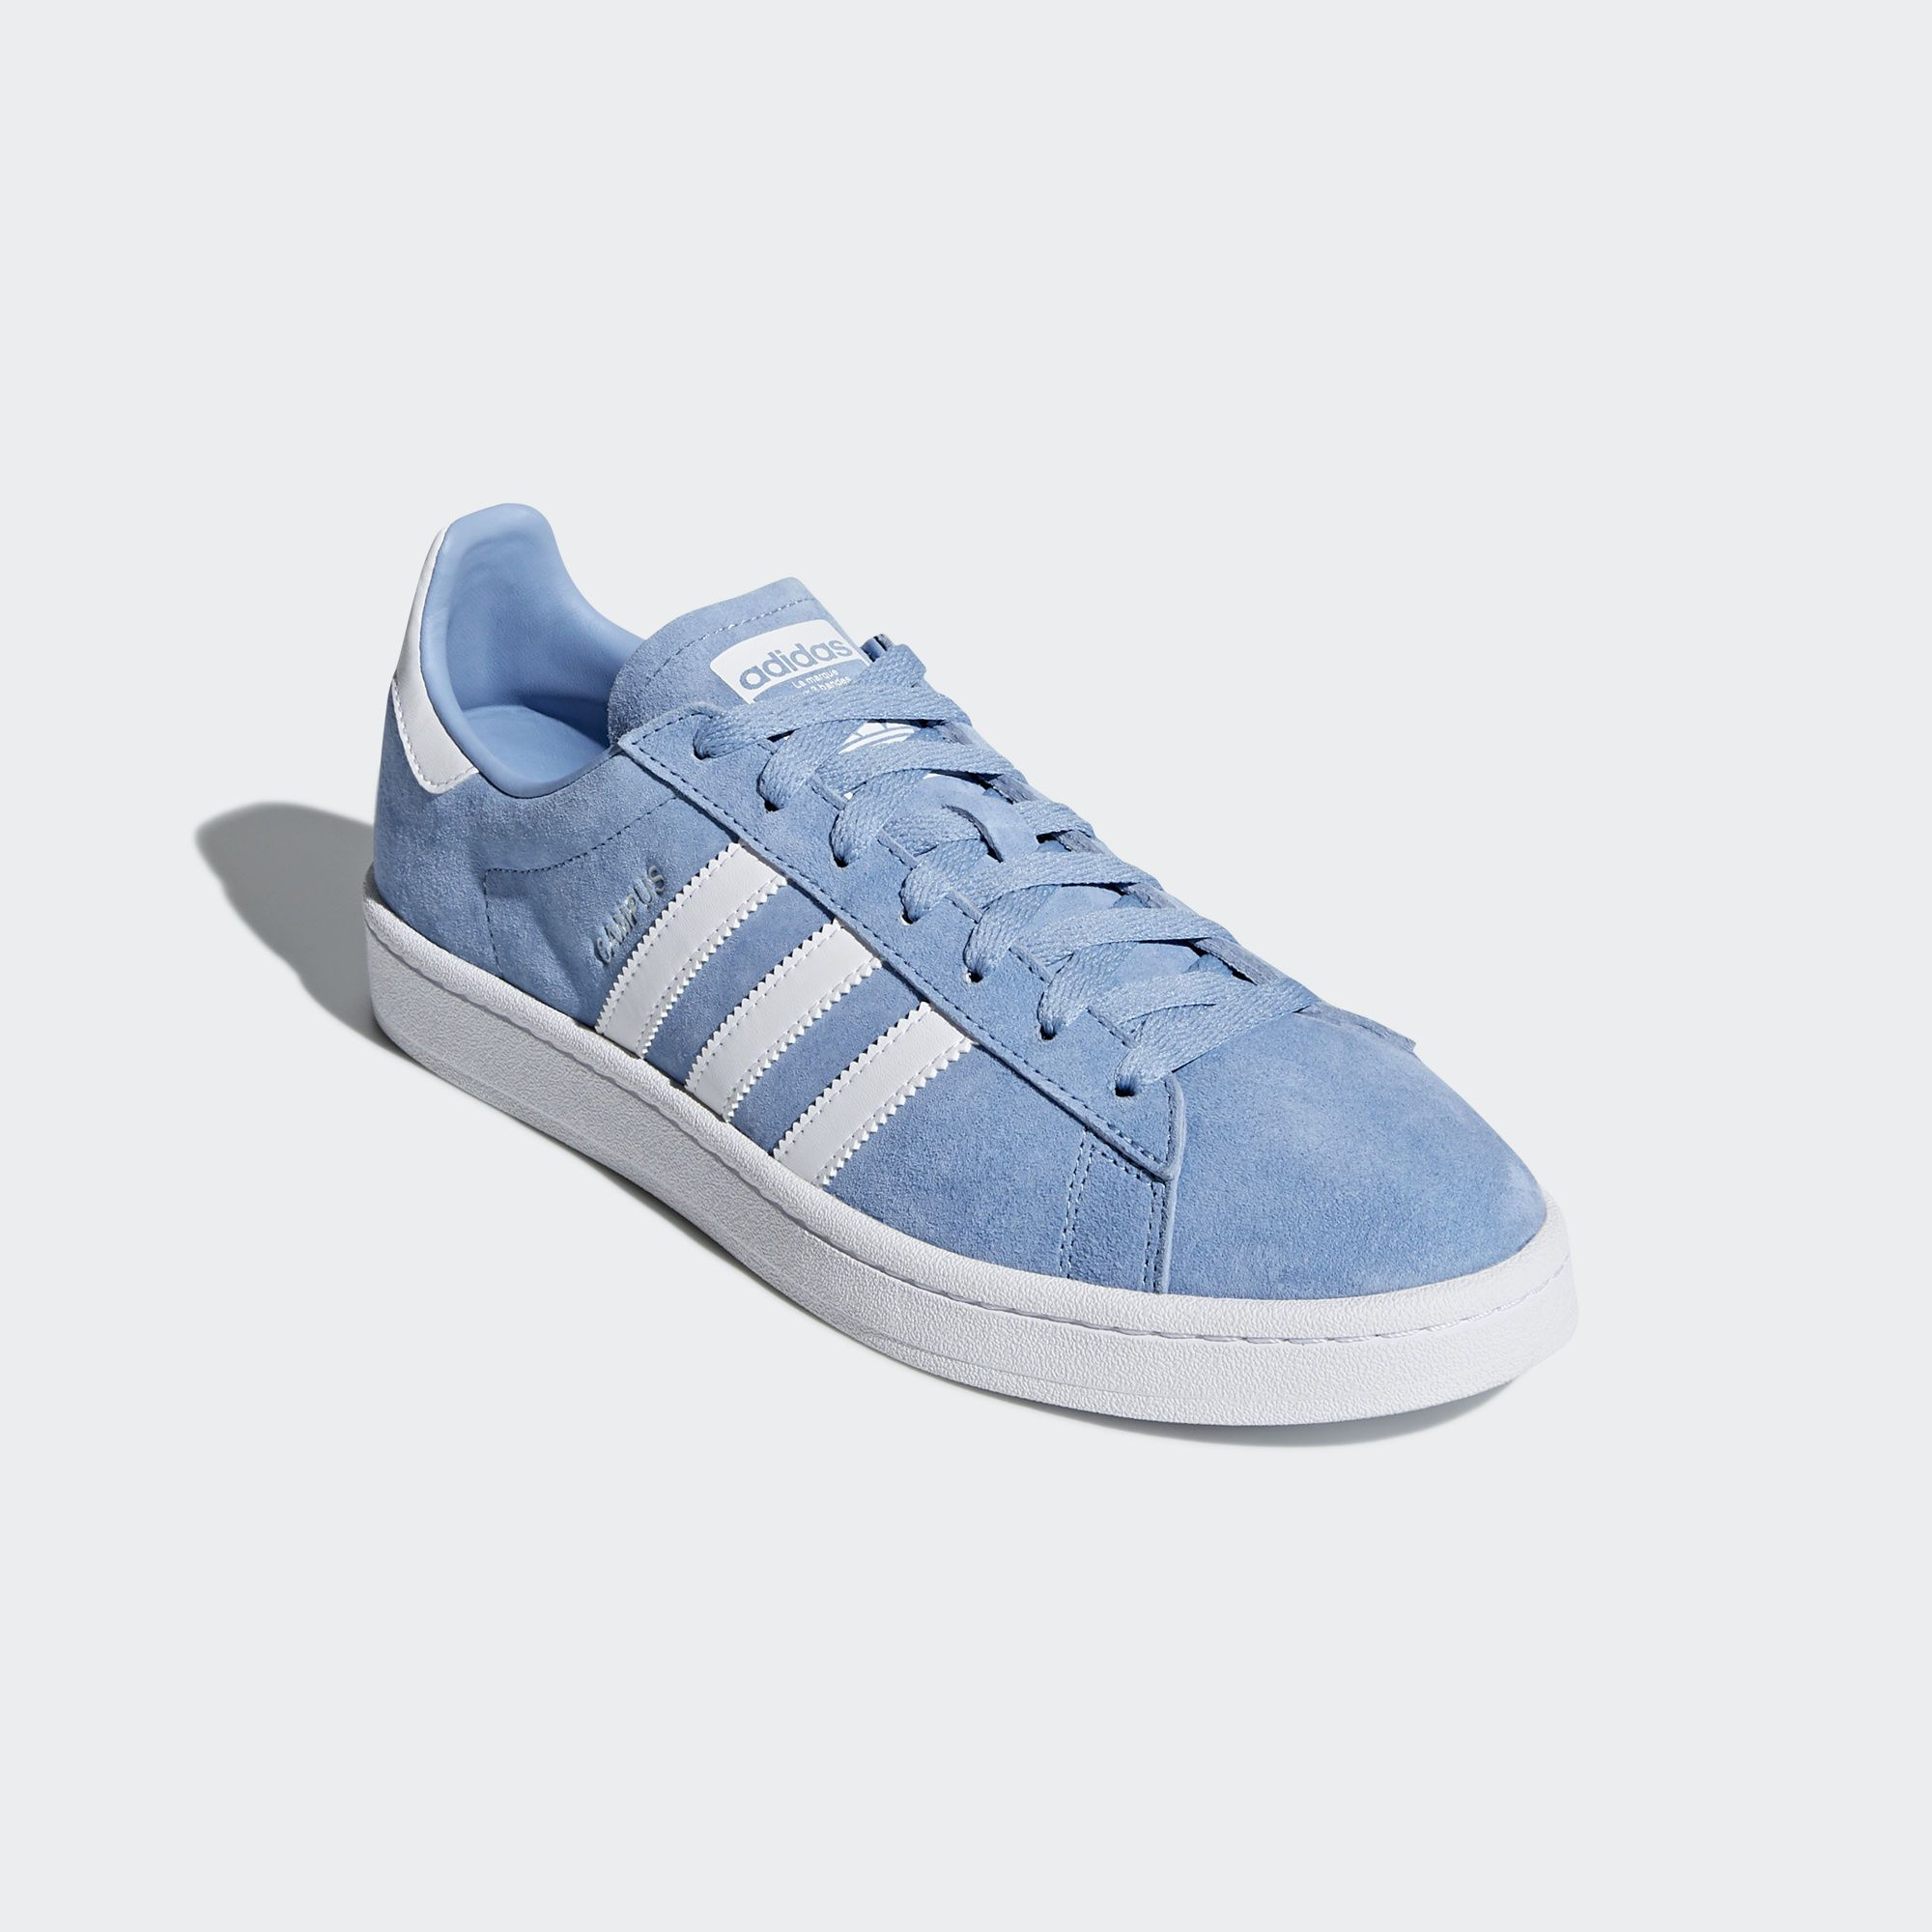 adidas Campus Shoes - Blue | adidas US | Sapatilhas adidas ...